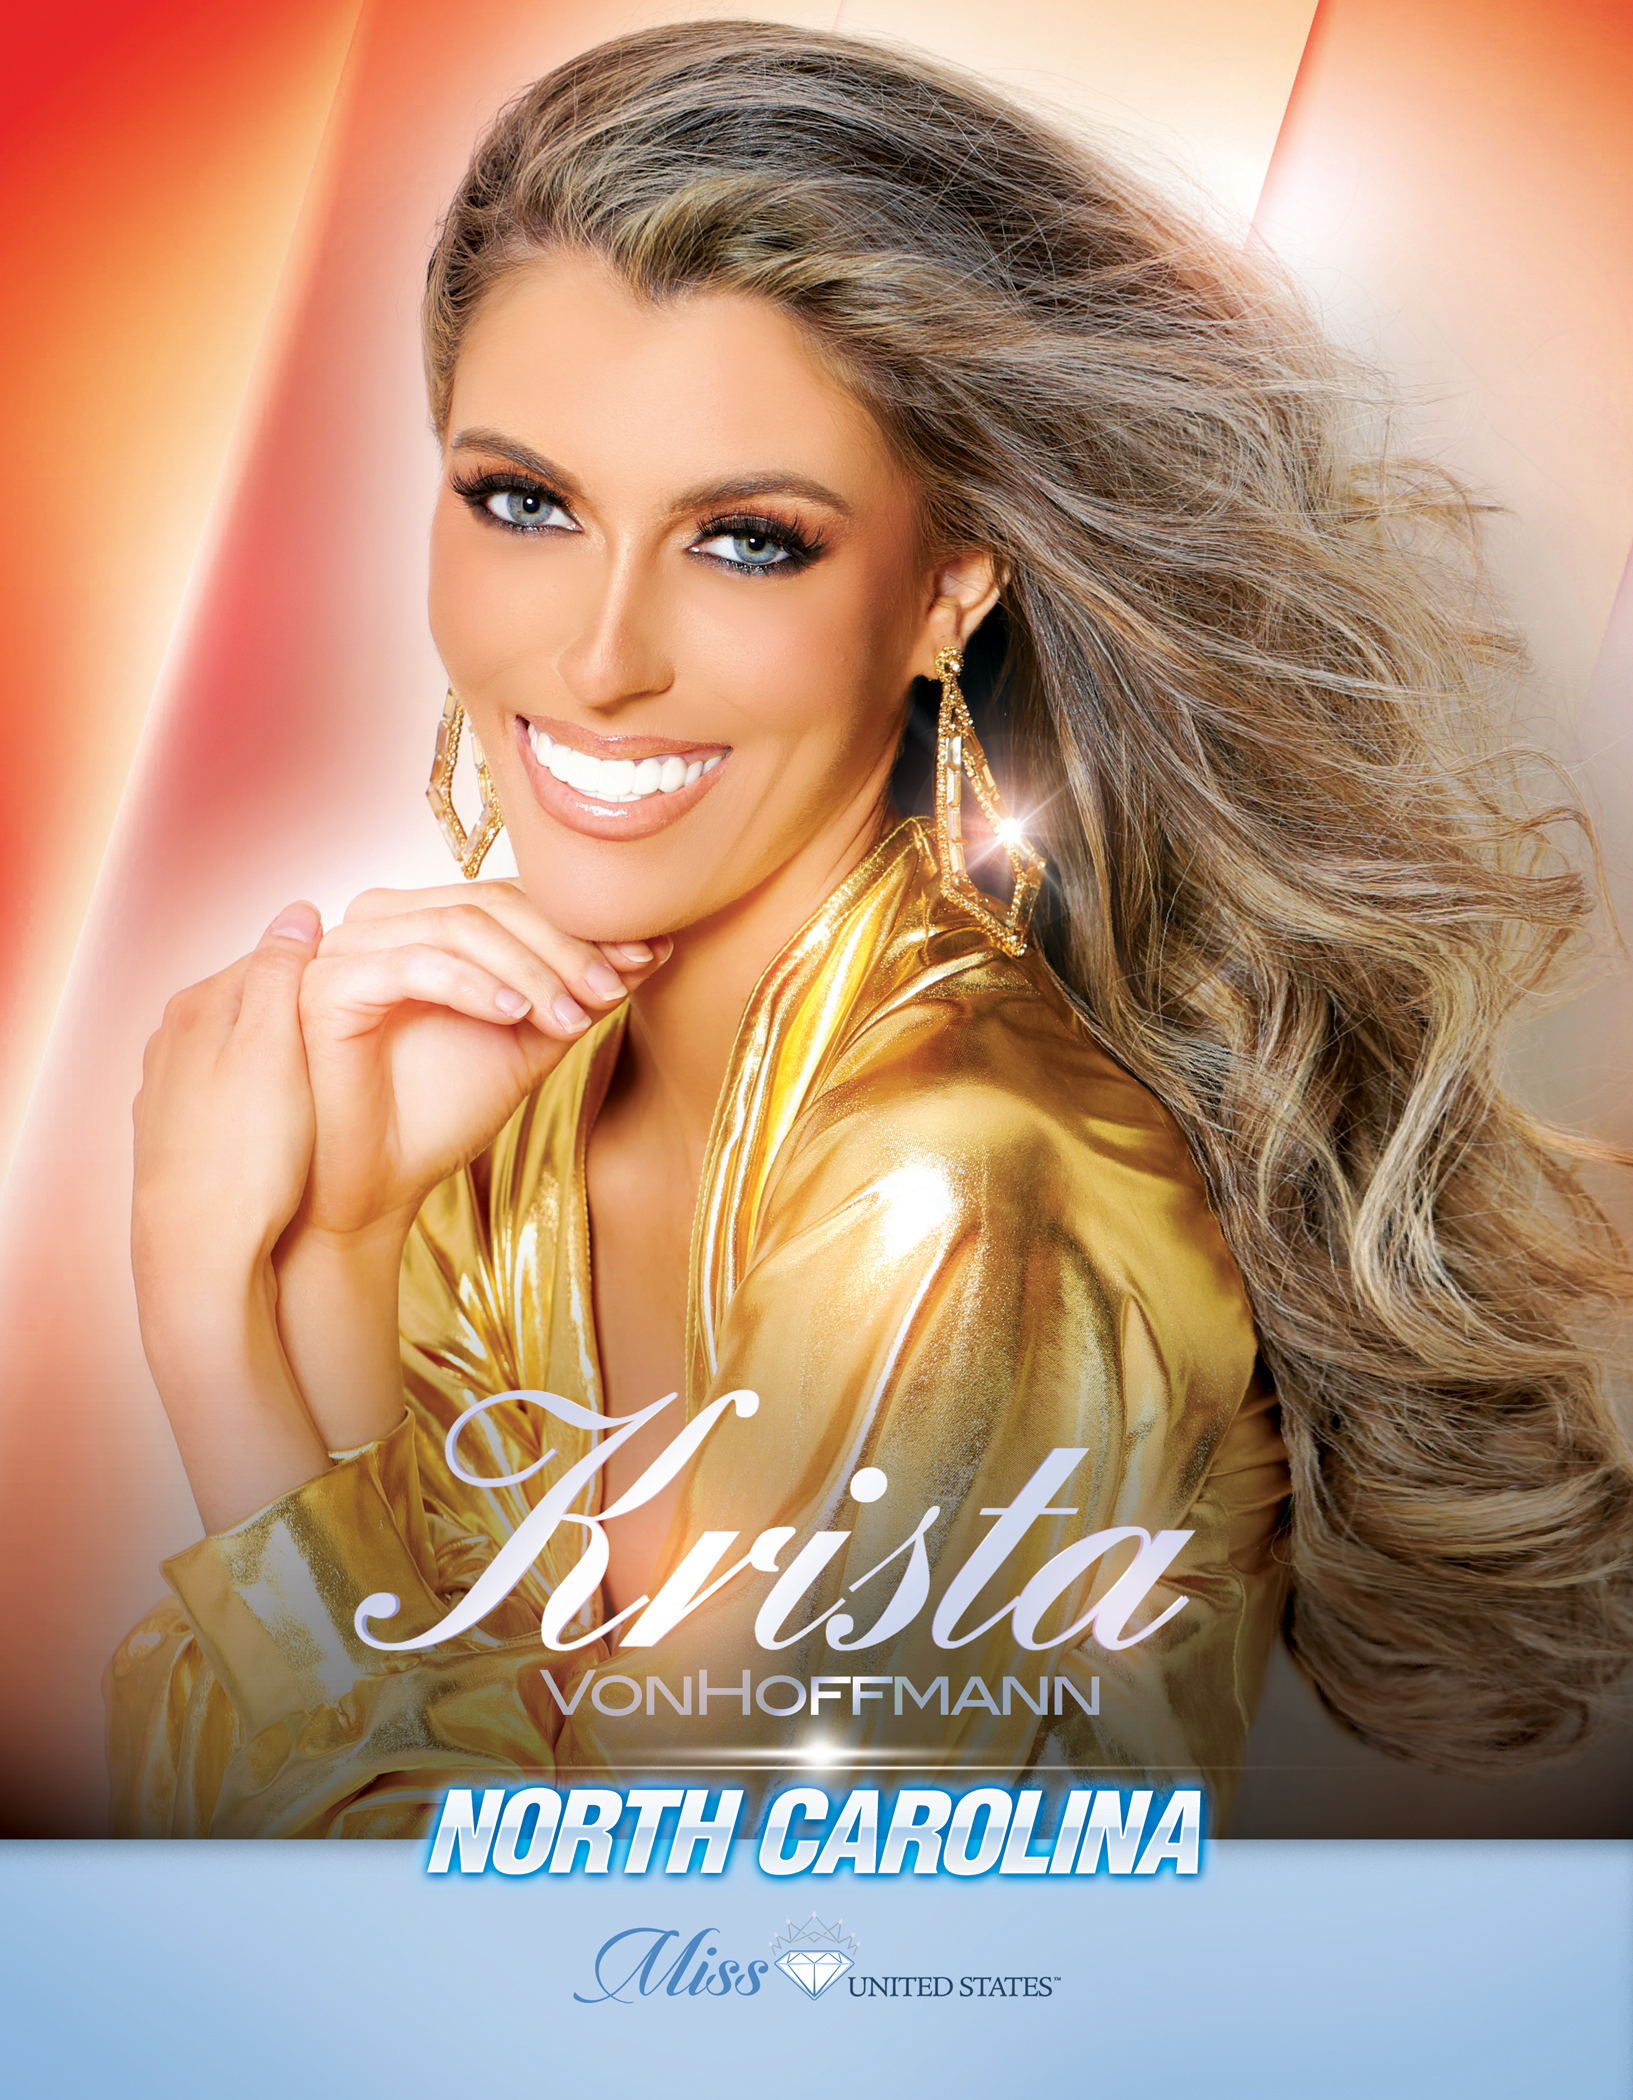 Krista VonHoffmann Miss North Carolina United States - 2019